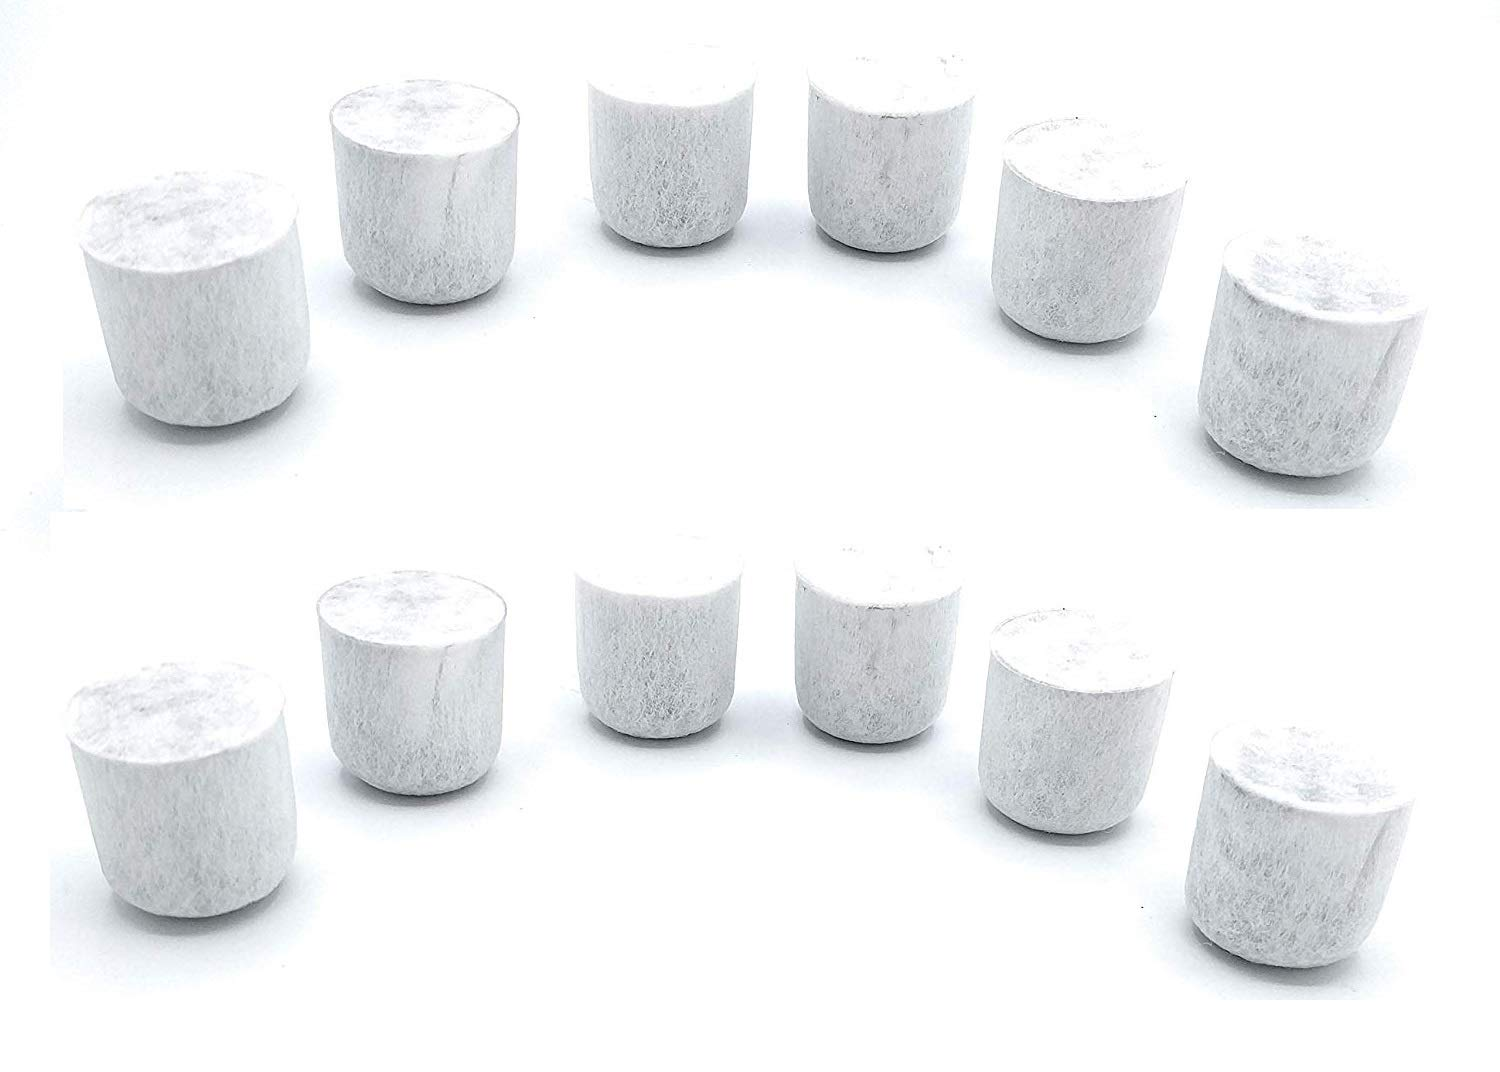 Blendin Replacement Charcoal Water Filters, Compatible with Farberware Coffee Makers (12 Pack)